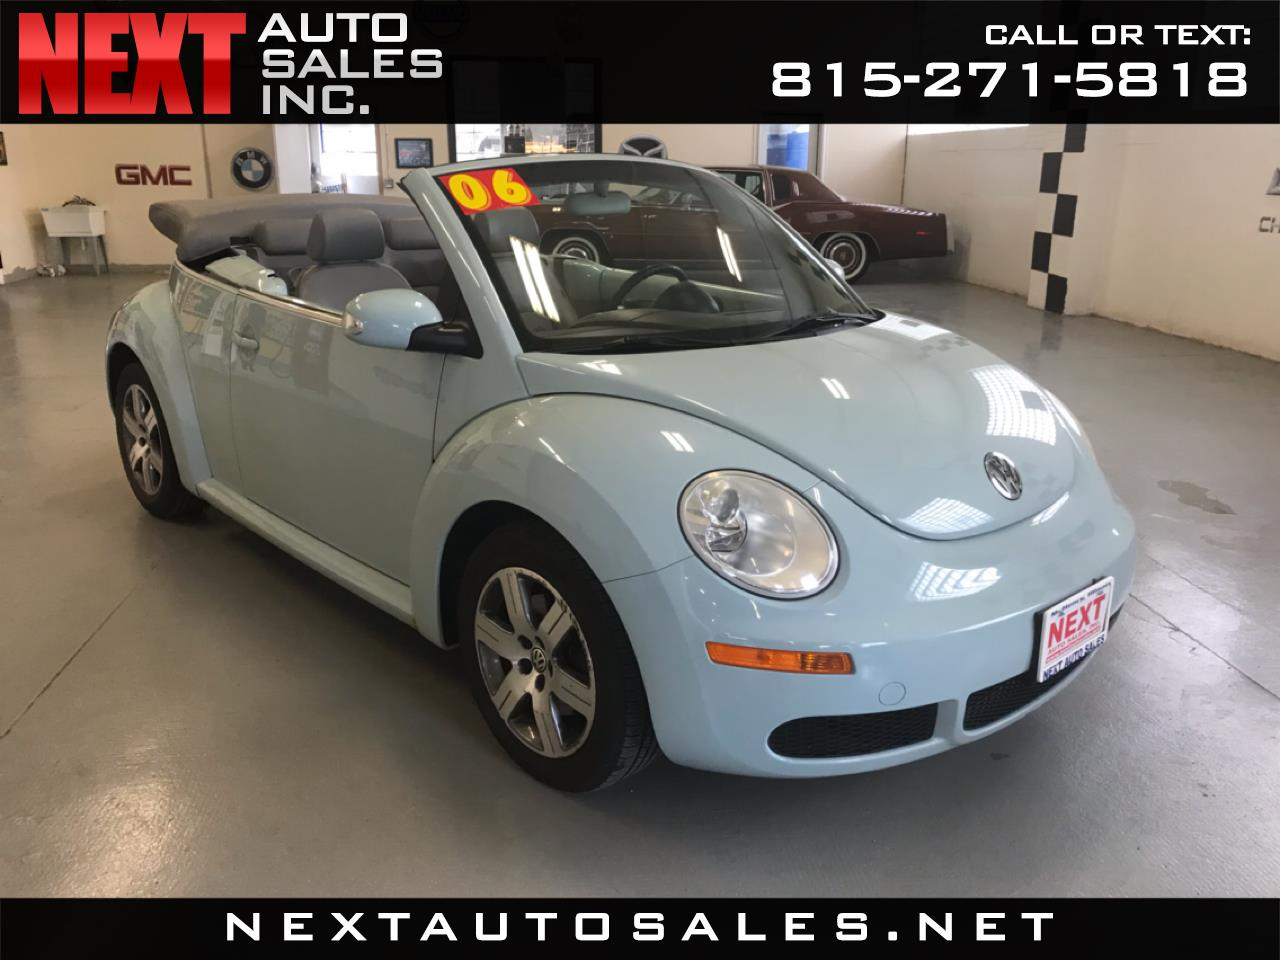 2006 Volkswagen New Beetle Convertible 2dr 2.5L Manual